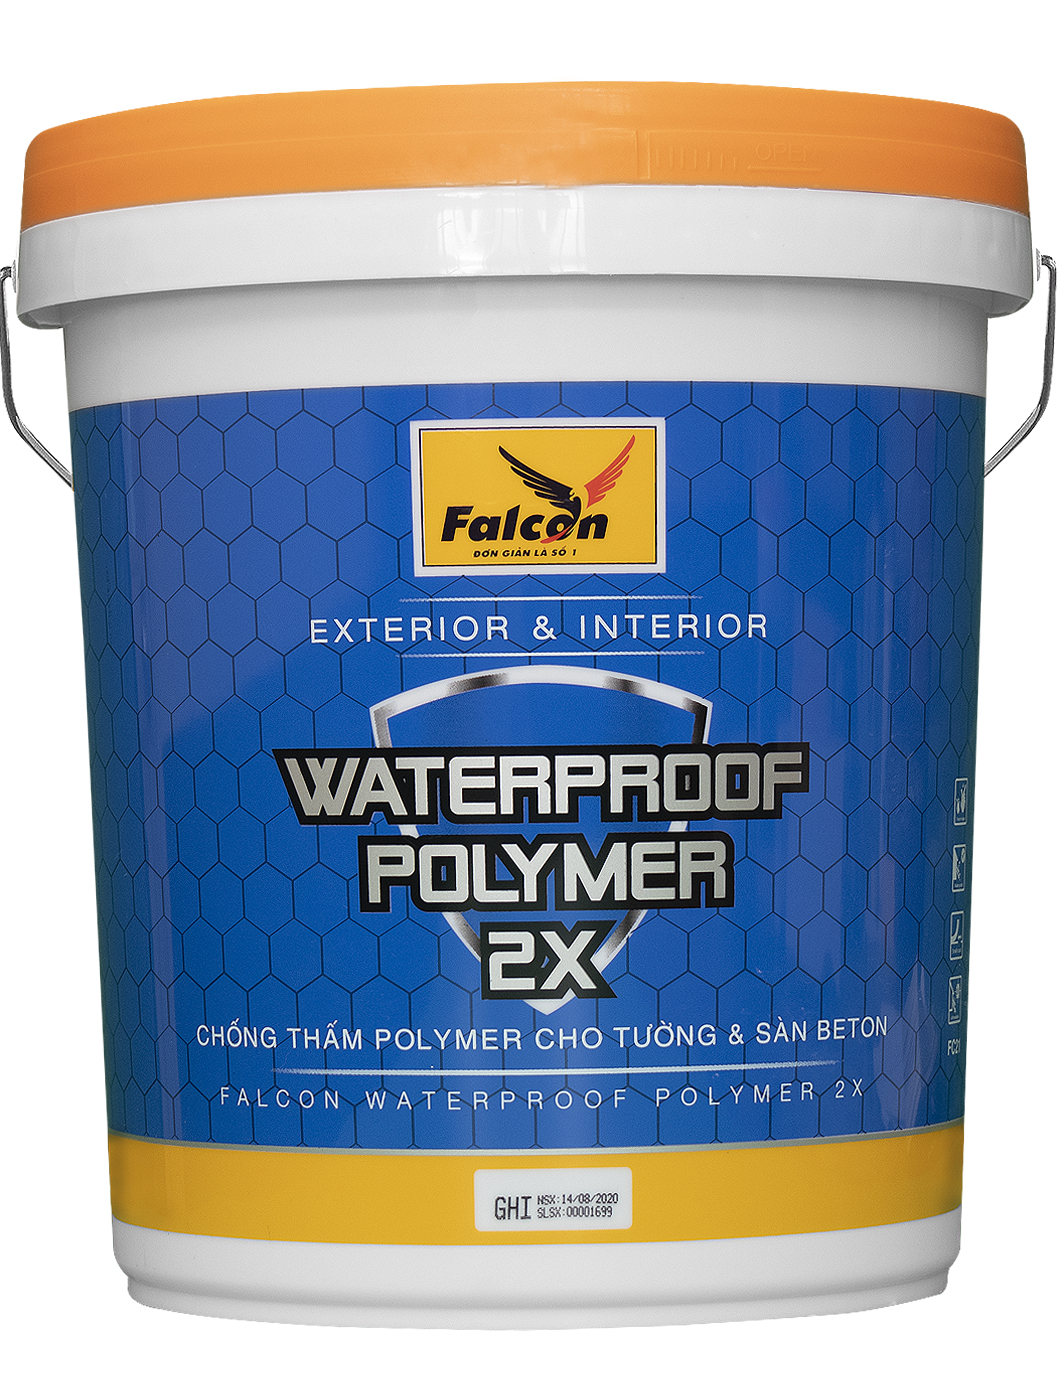 POLYMER FALCON WATER PROOF POLYMER 2X